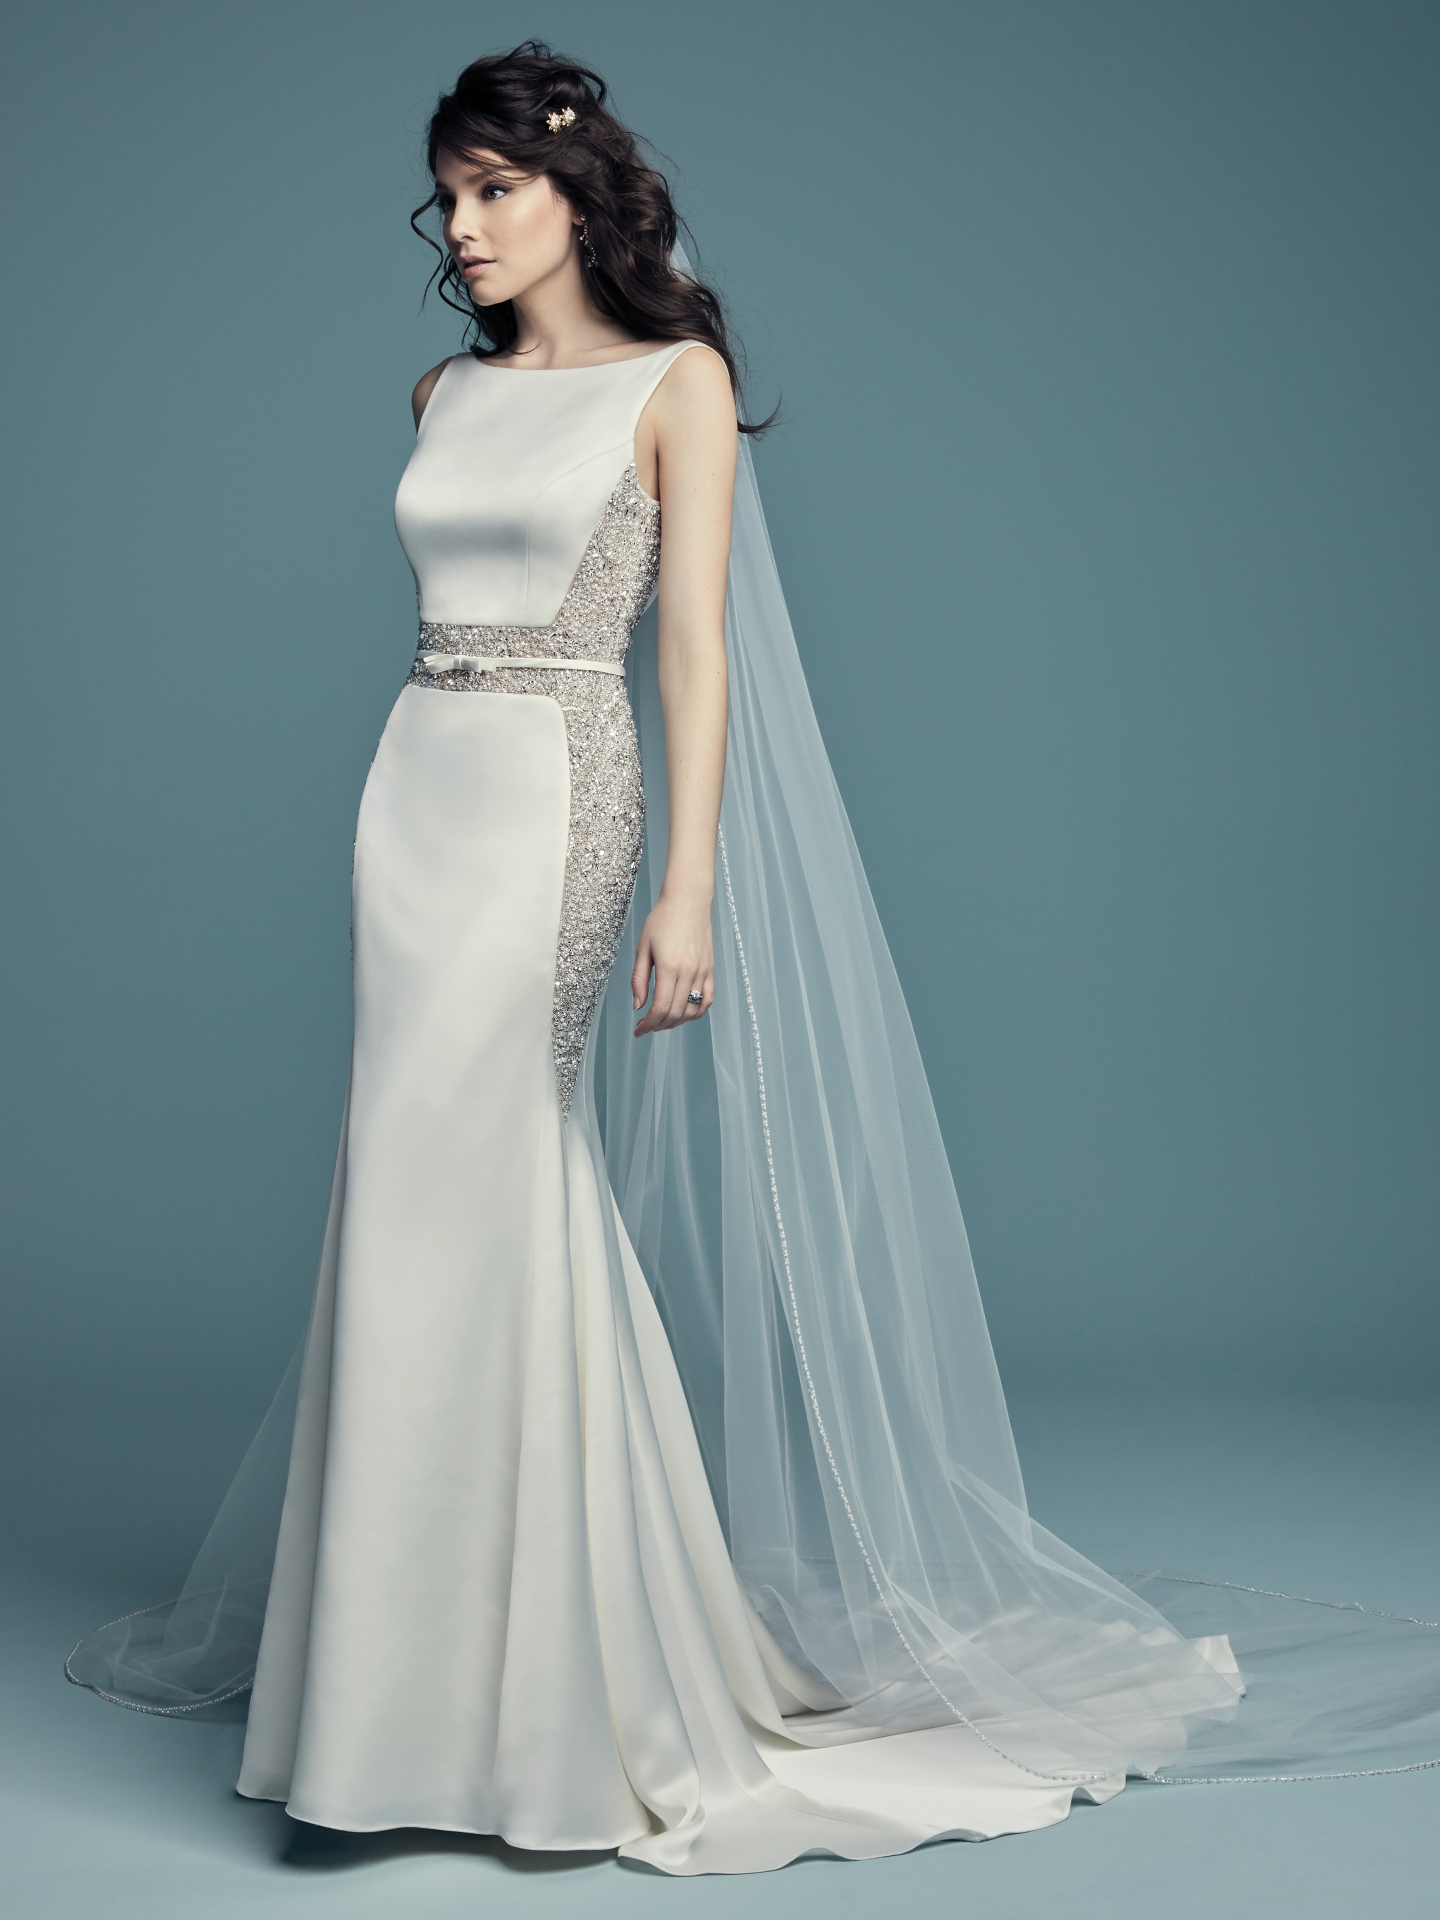 Silk and Silk Wedding Dress Alternatives For The Glamorous Bride ...